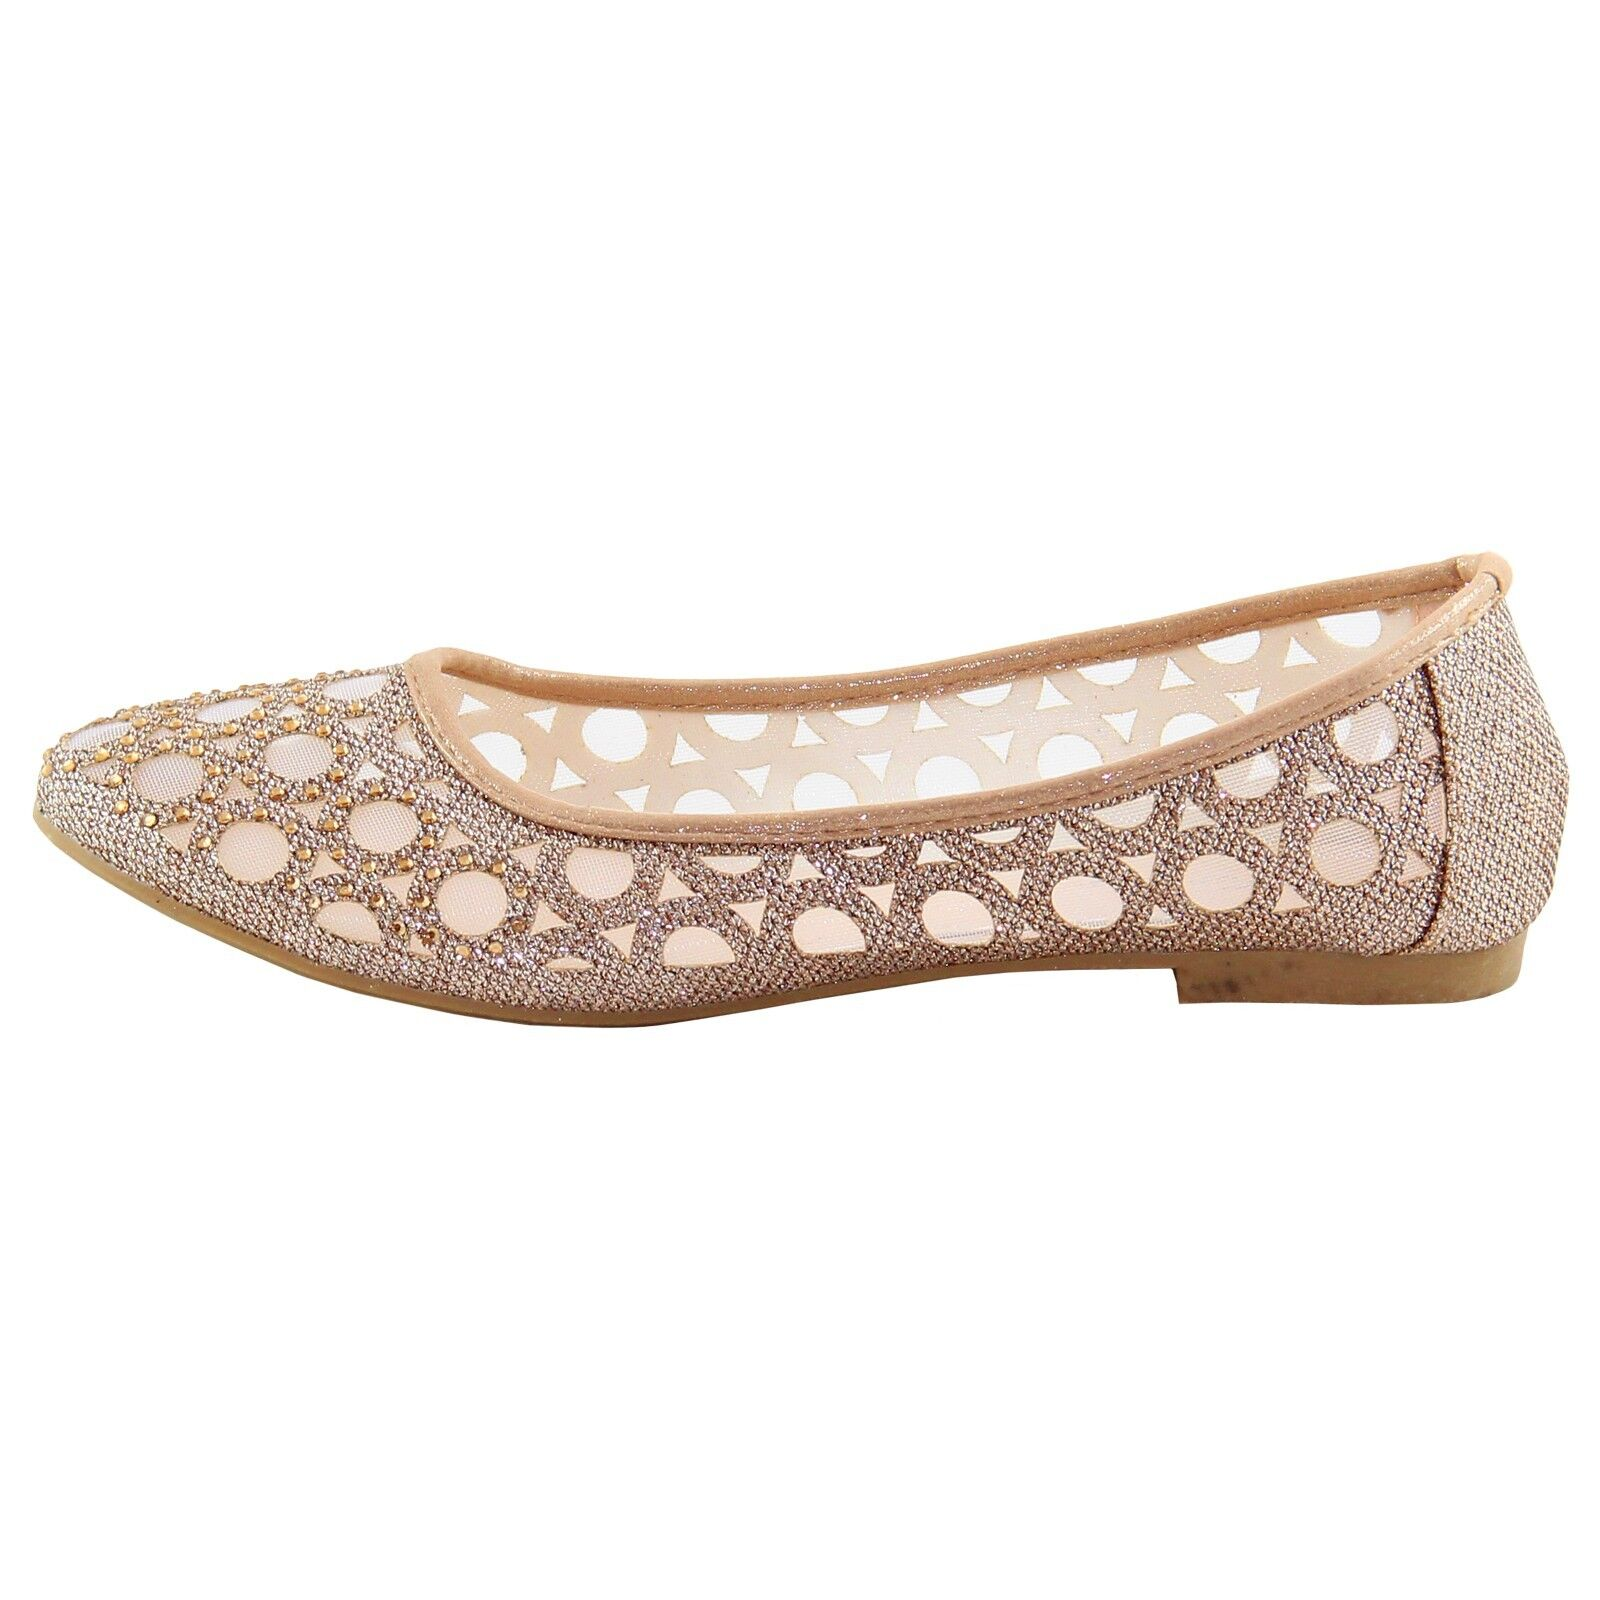 New women's shoes blink ballet flats mesh finish casual summer beige champagne 1